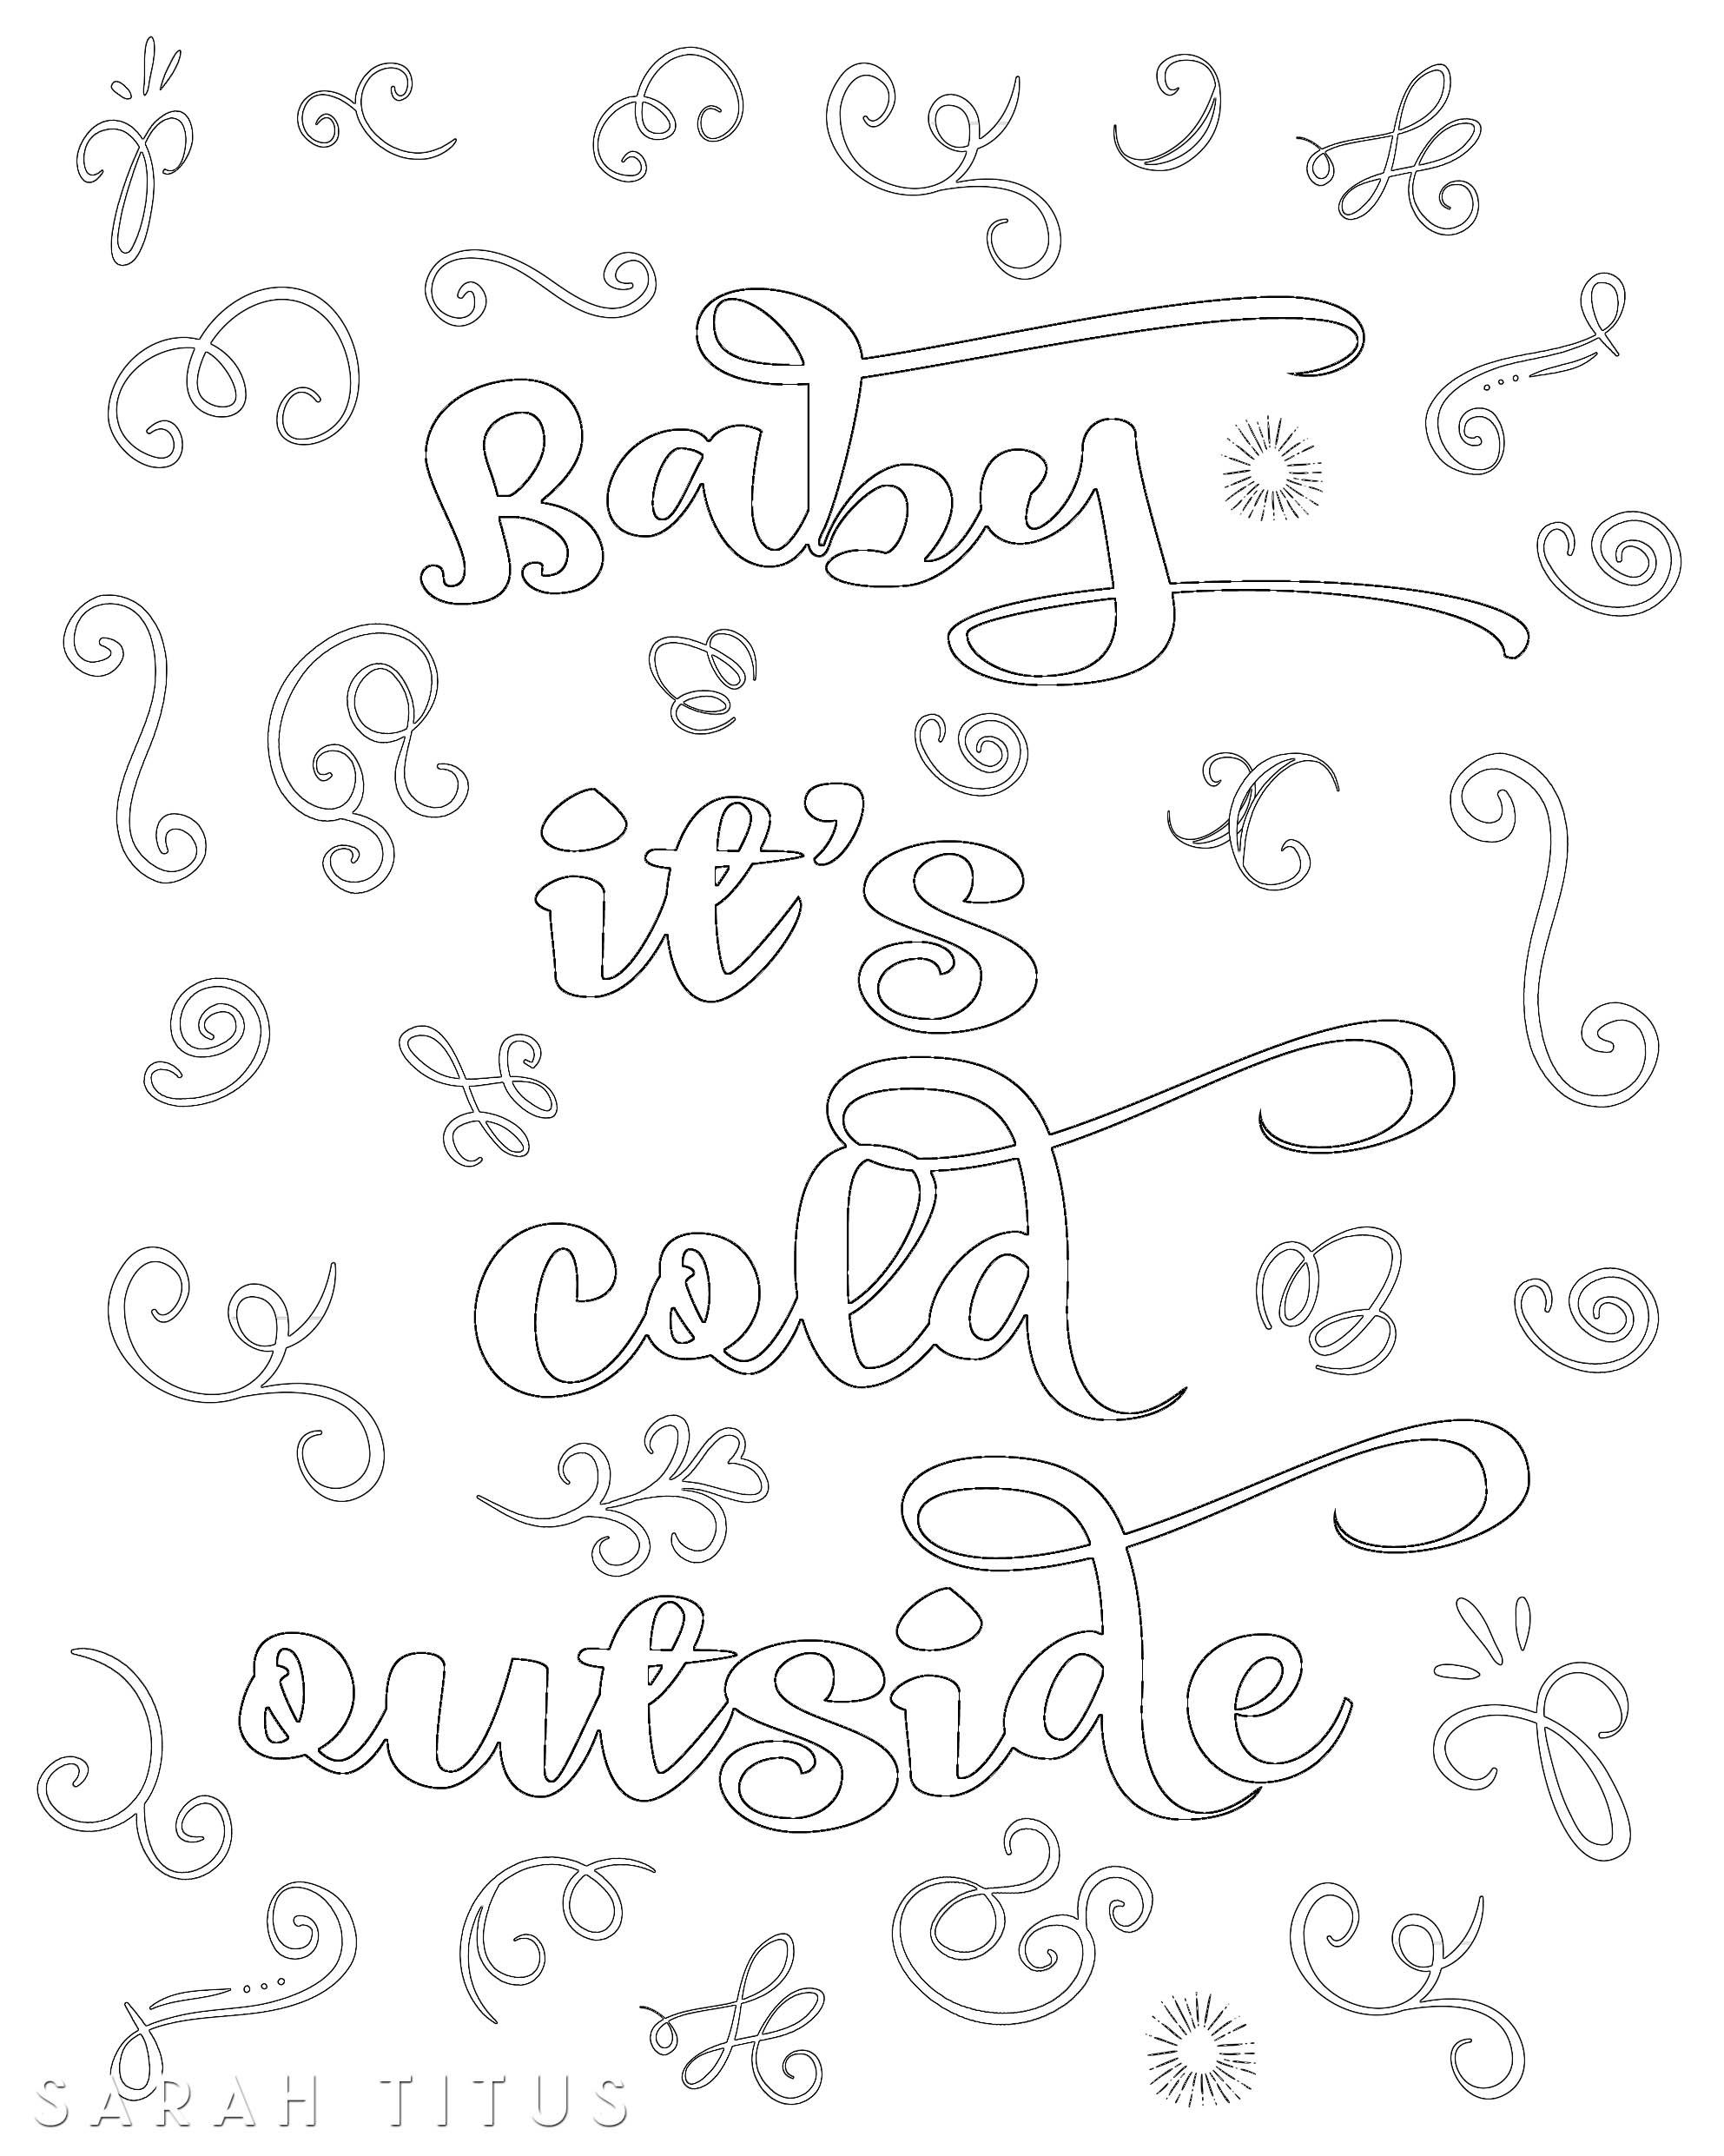 Christmas Coloring In Templates With Free Printable Sheets Sarah Titus